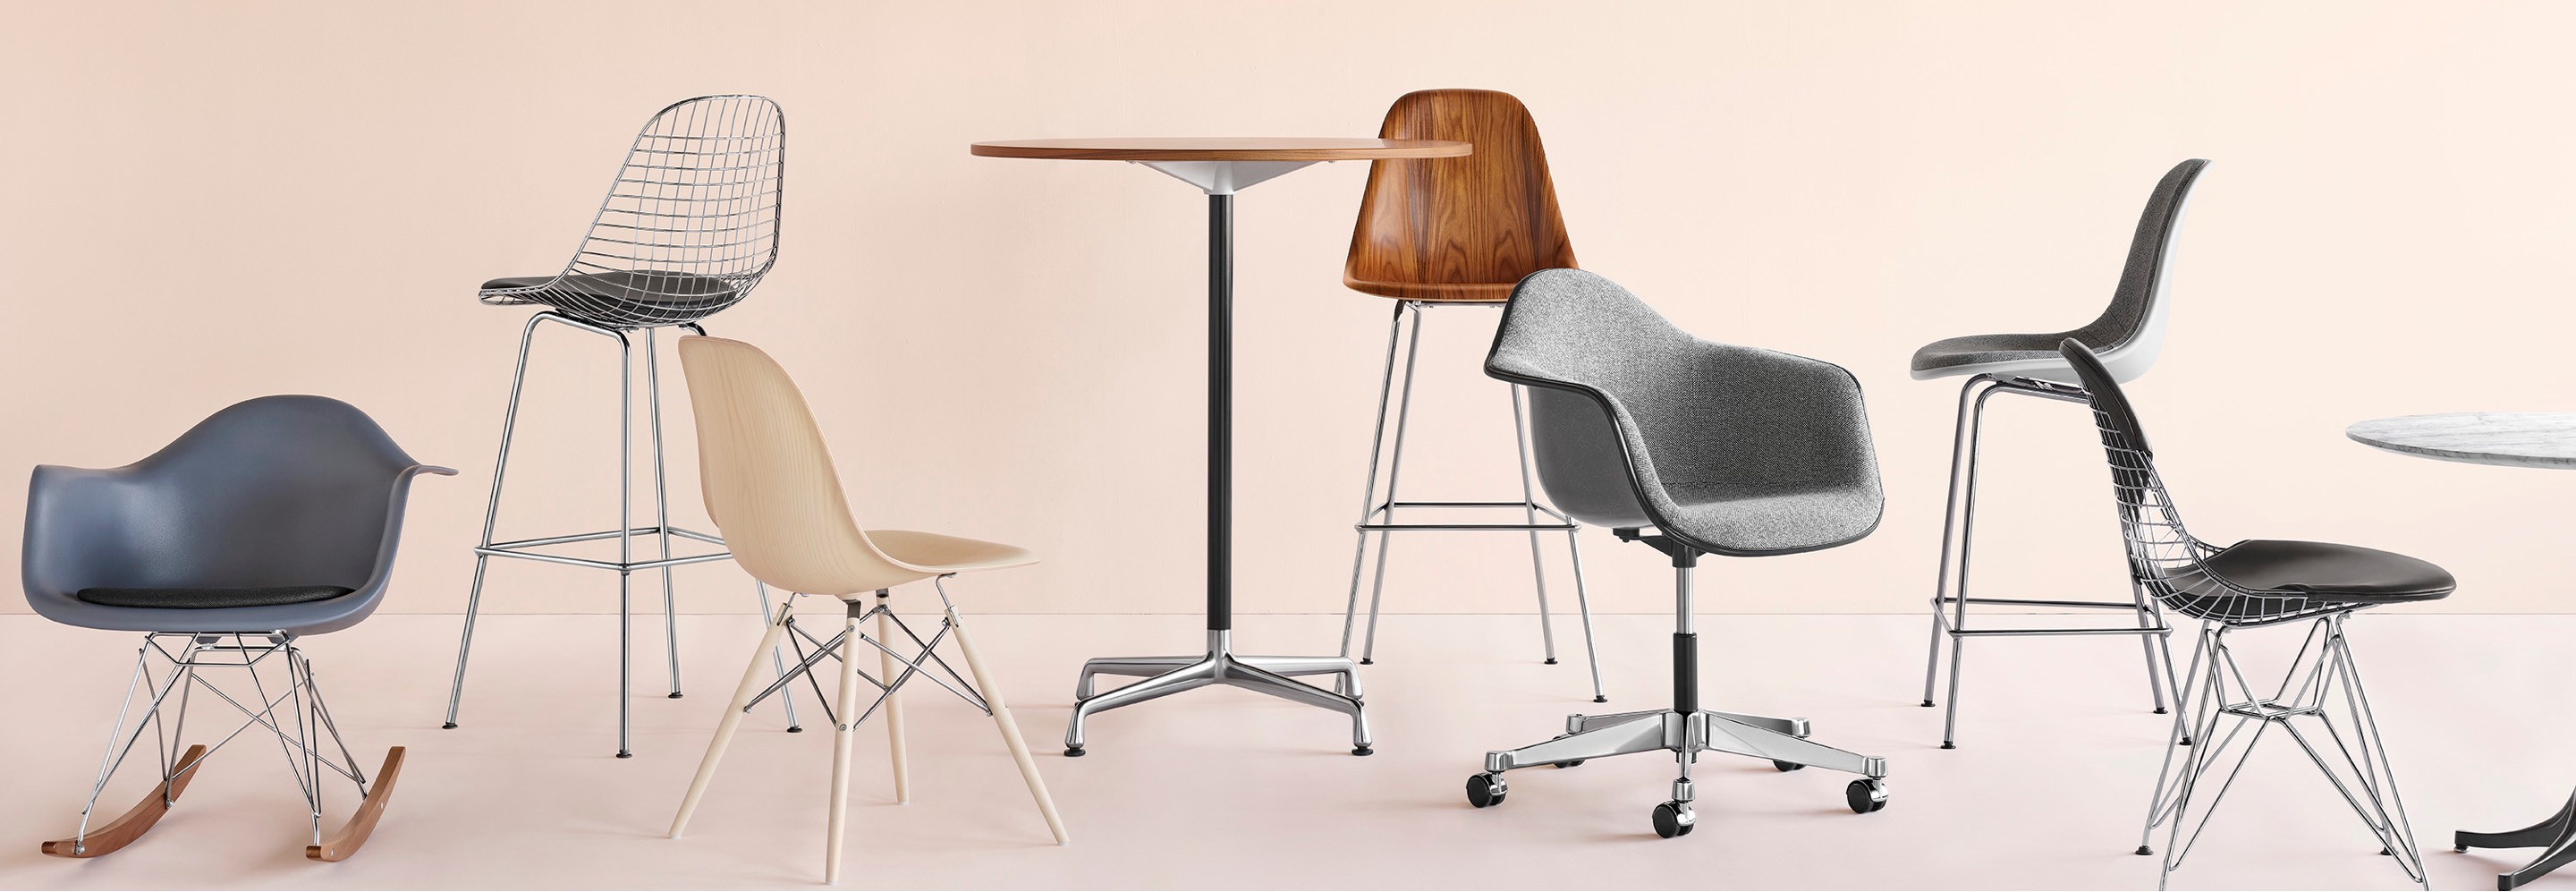 A casual arrangement of Eames shell chairs and stools in fibreglass, wire, wood and plastic.